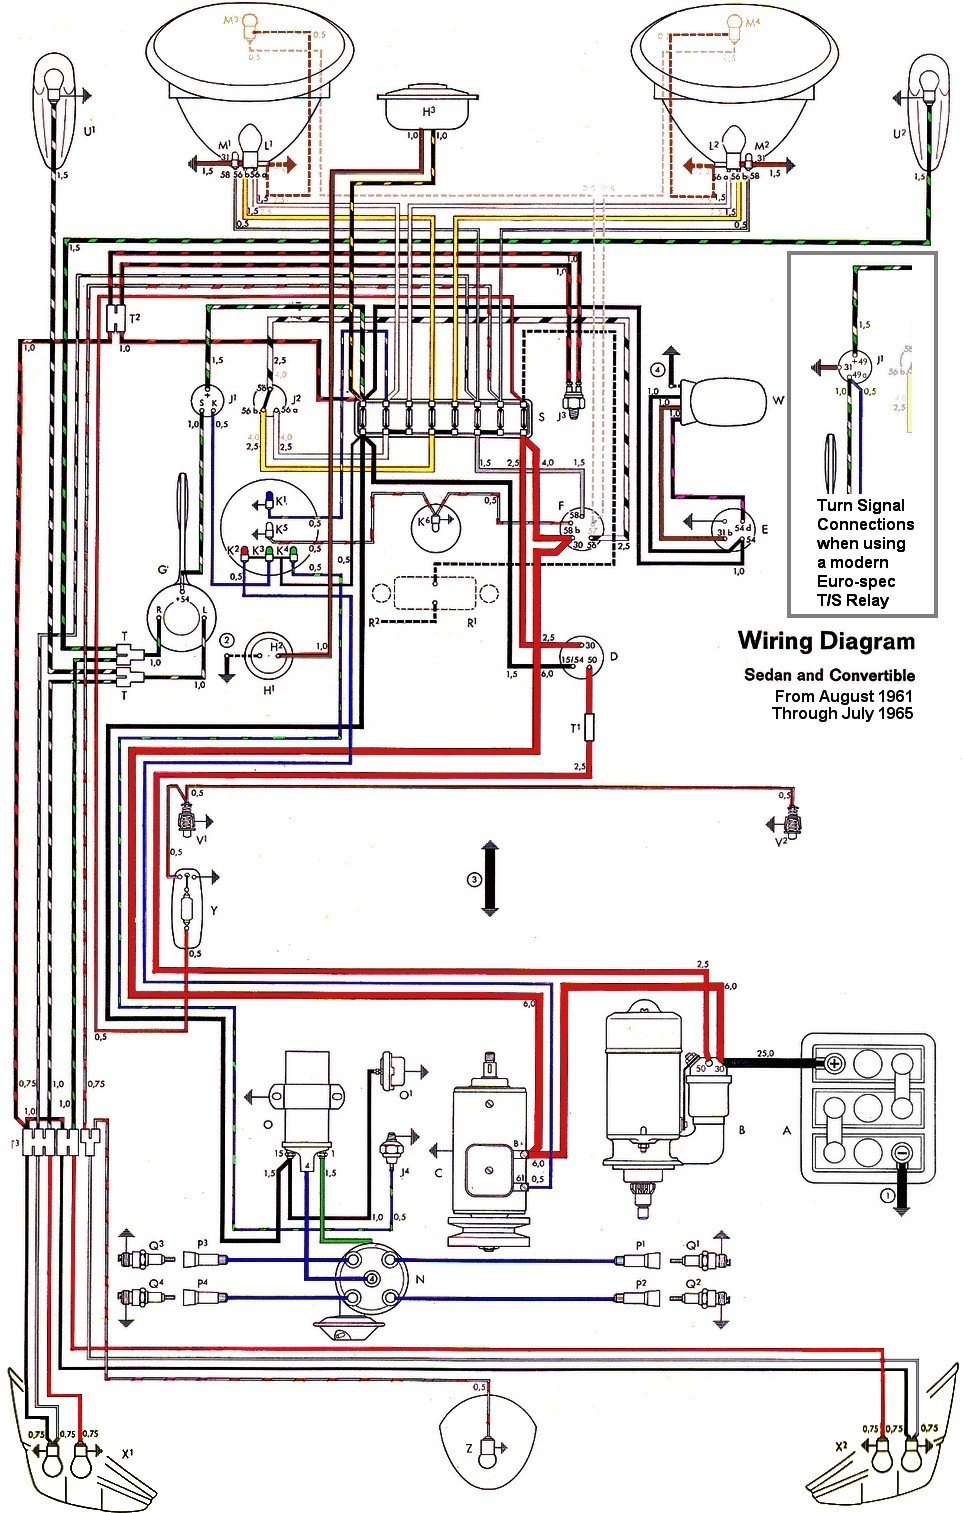 bug_62 65withinset vw wiring harness diagram cj7 wiring harness diagram \u2022 wiring Wiring Harness Diagram at creativeand.co